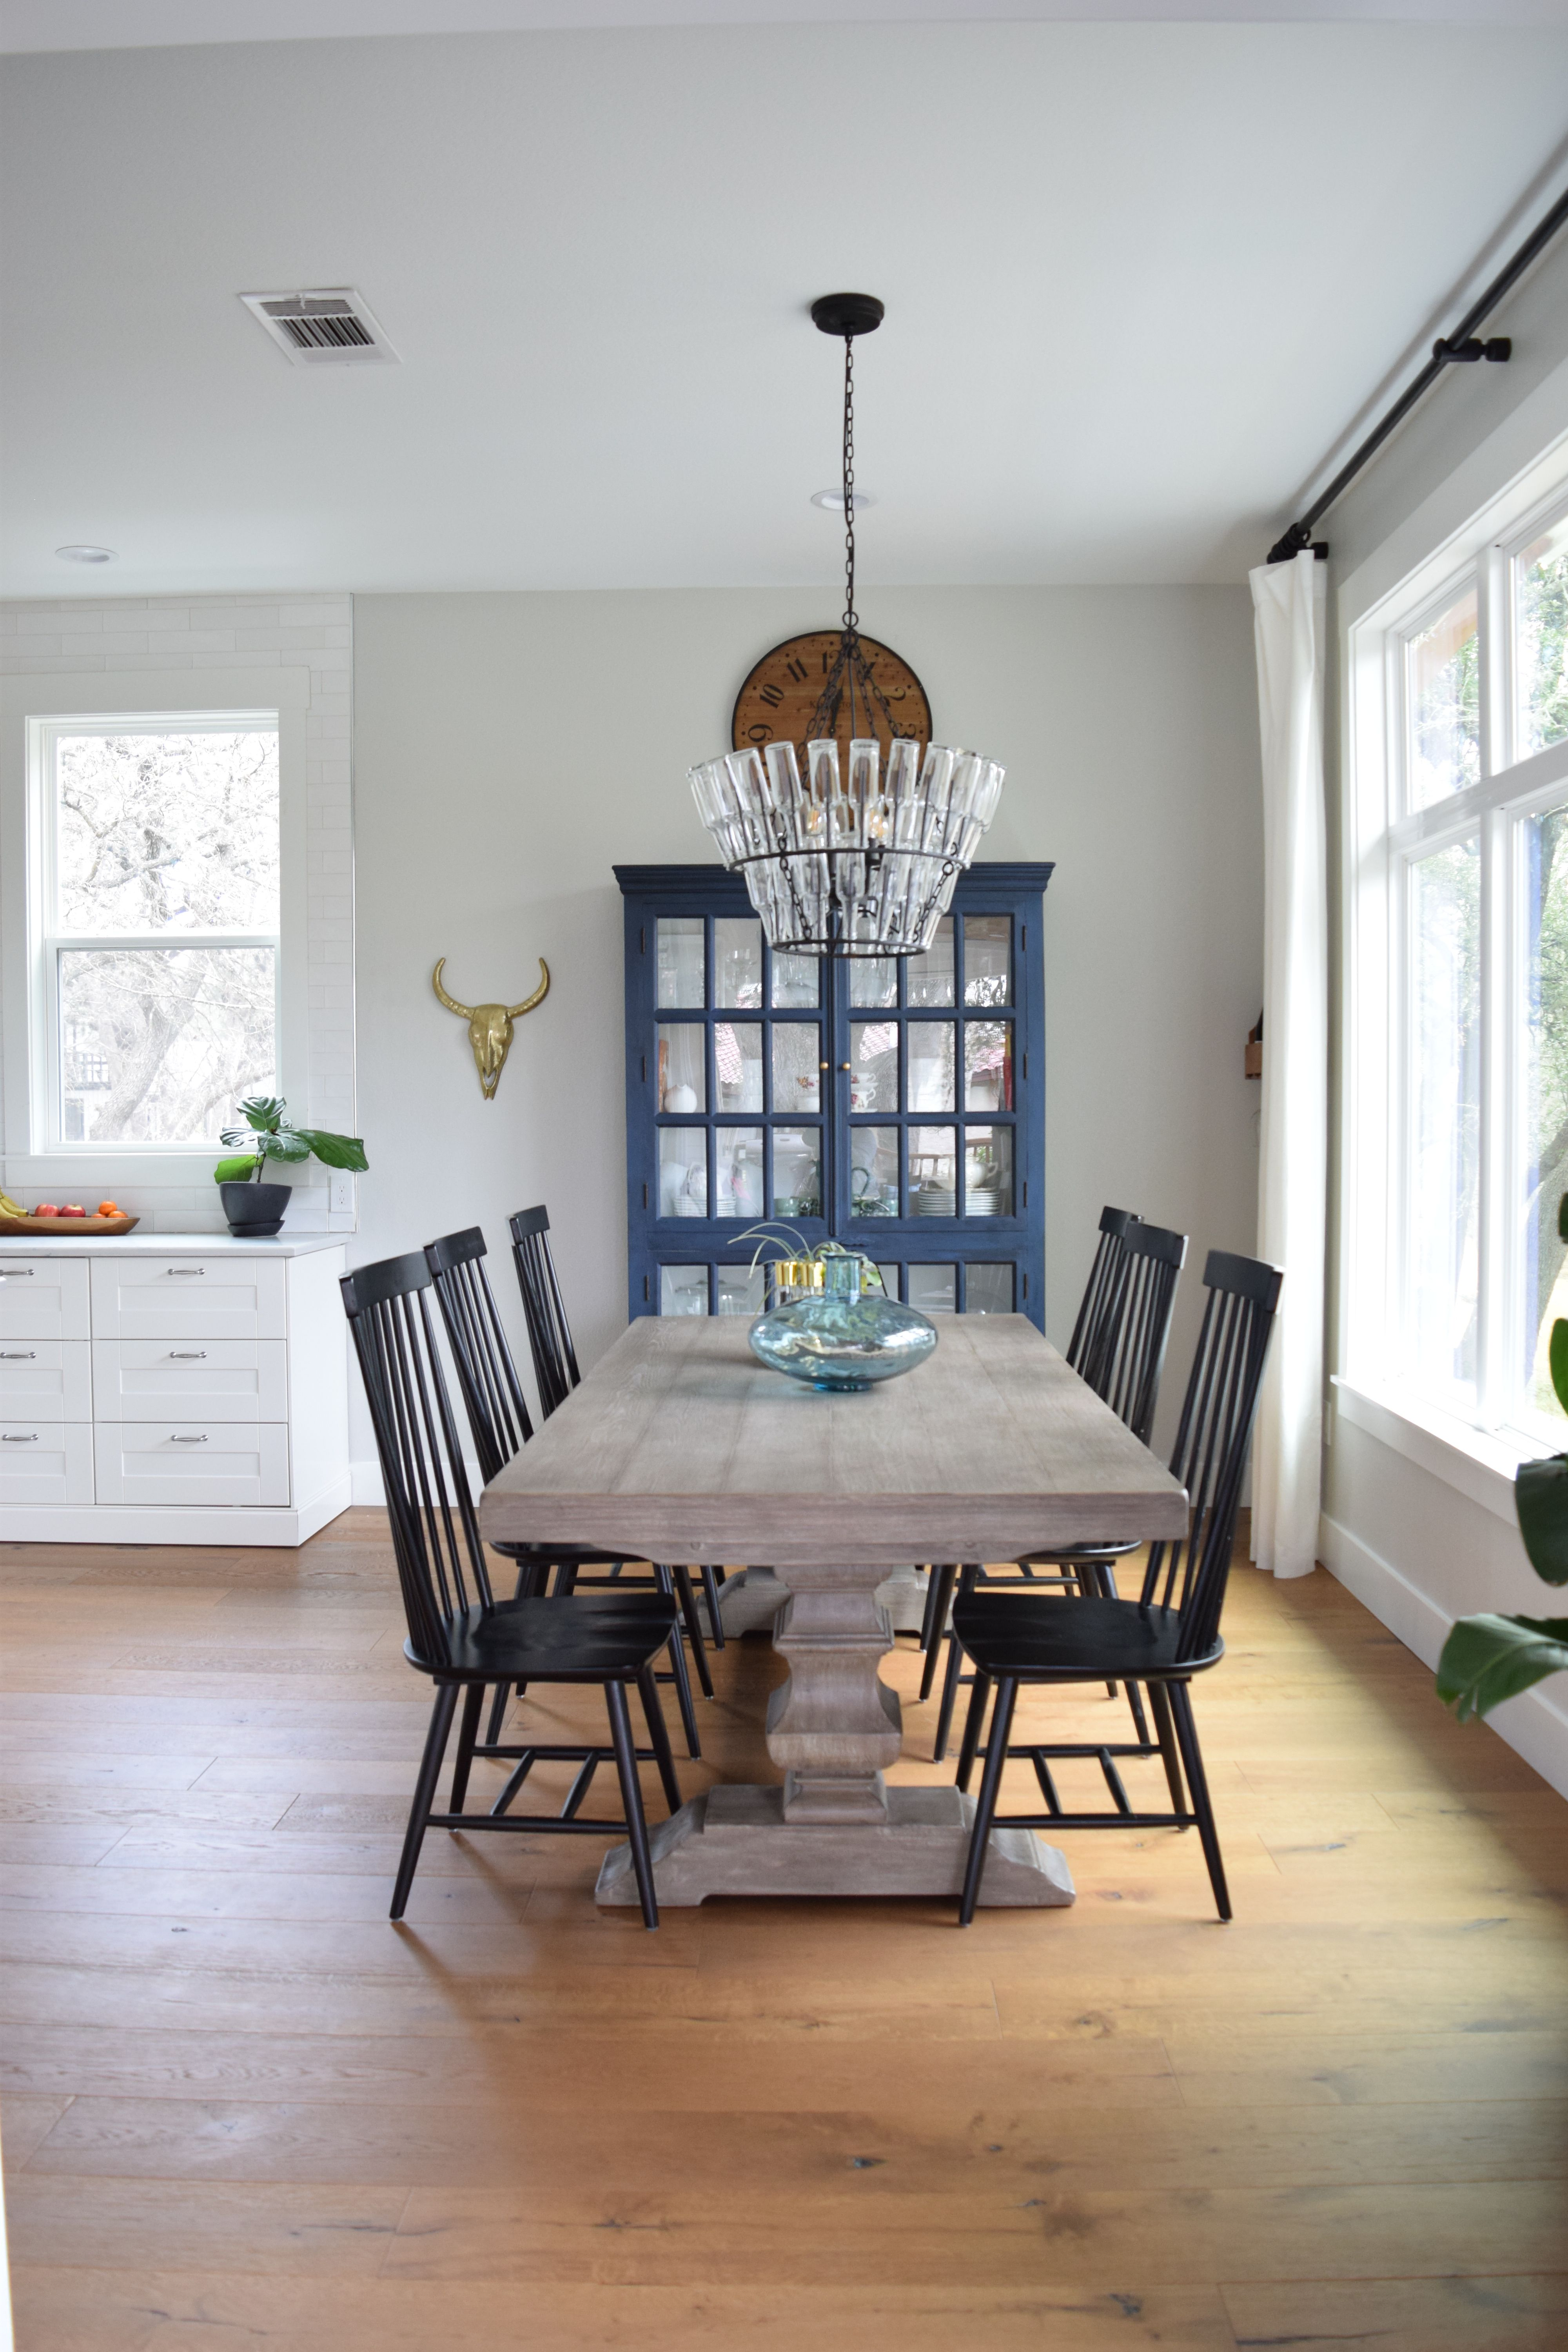 chinese dining room set high definition pics   Modern farmhouse dining room with bottle chandelier, navy ...